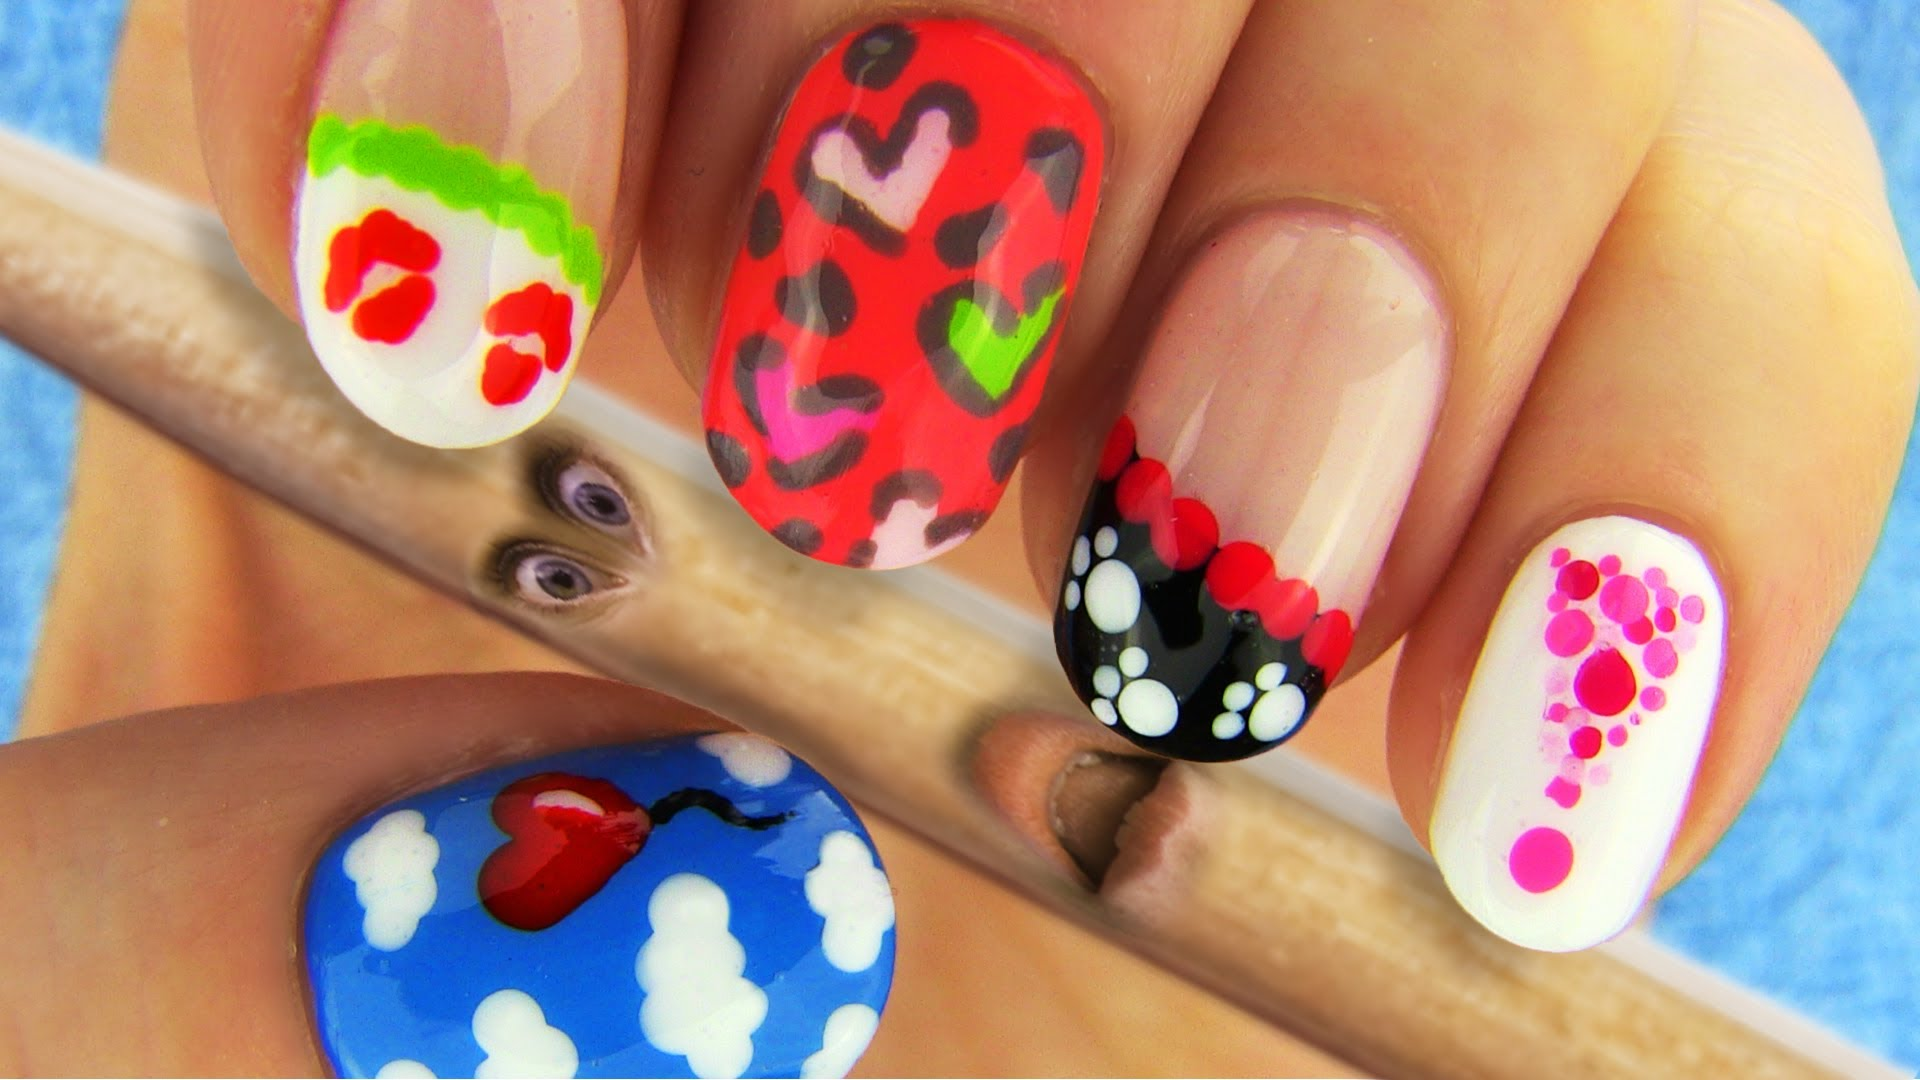 6 Nail Art Designs Nail Tutorial Using Toothpick As A Dotting Tool All Beauty Videos